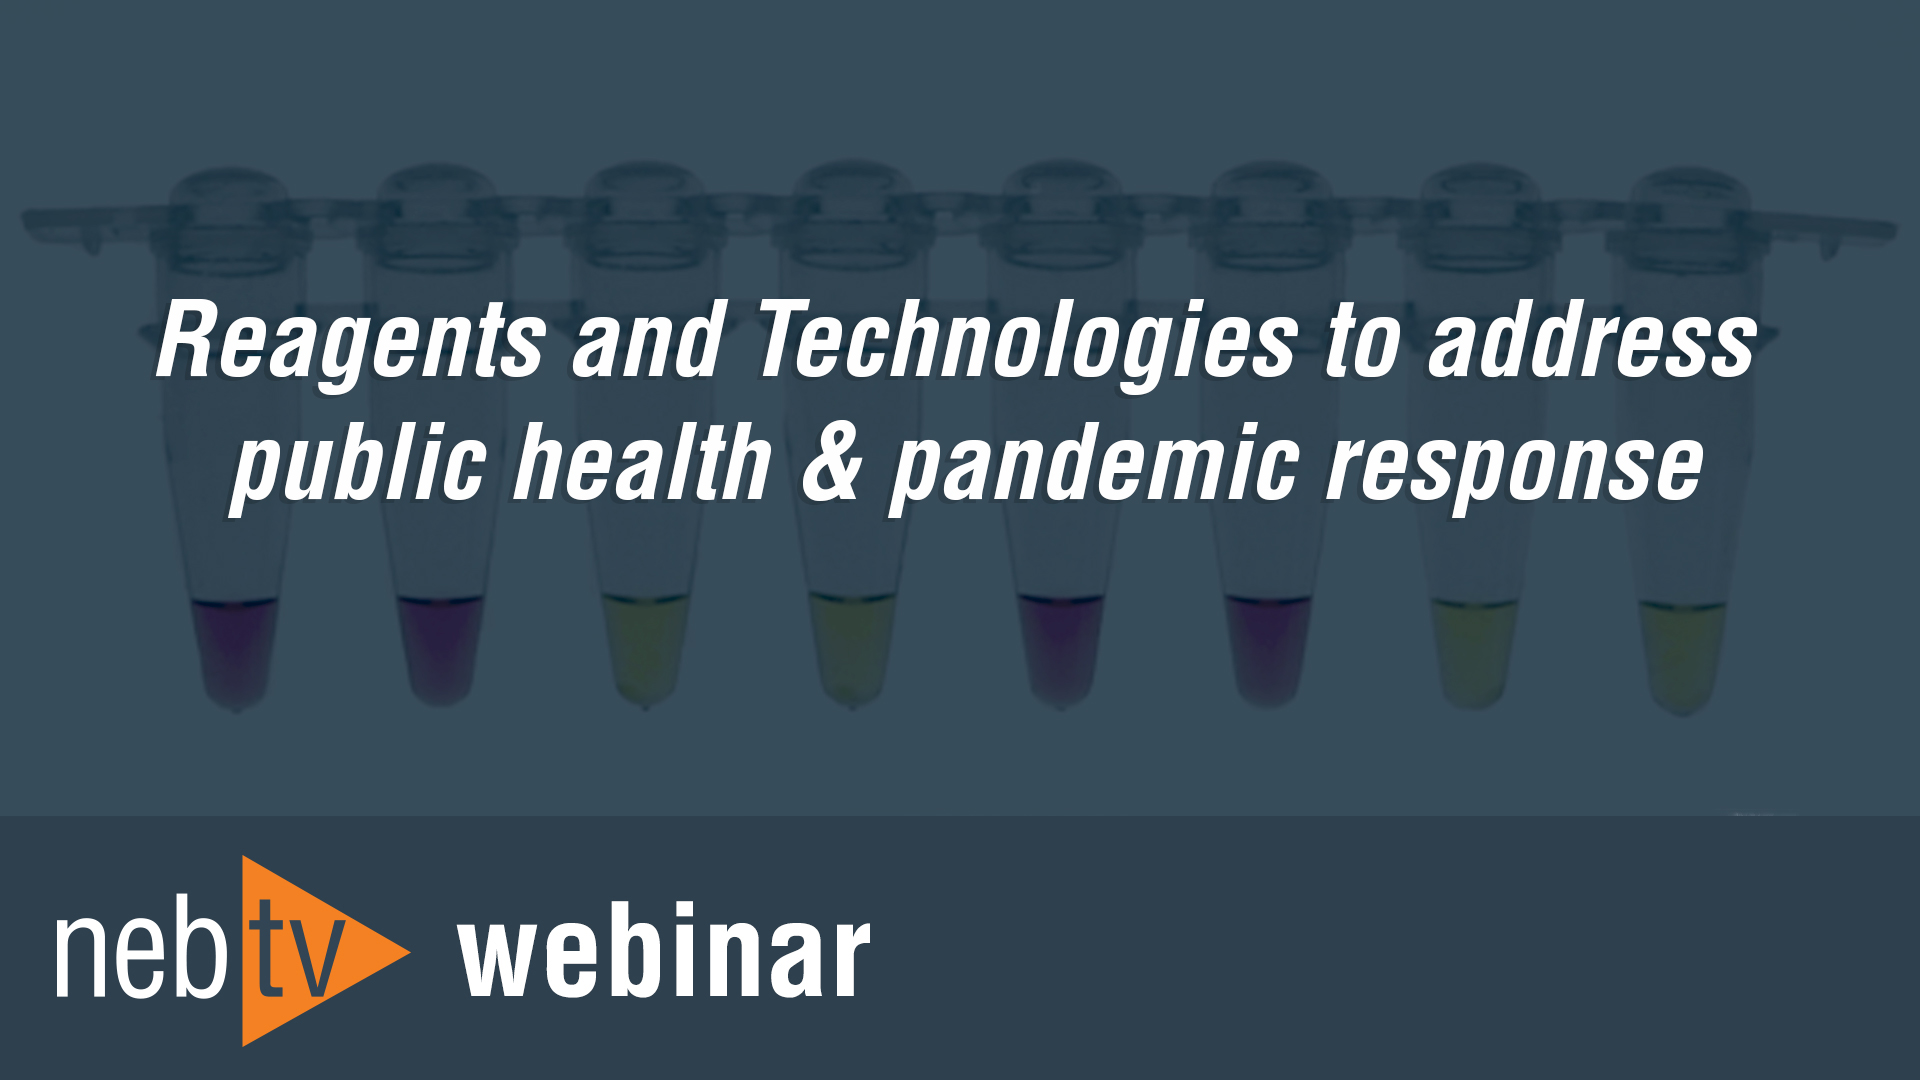 Reagents and technologies to address public health & pandemic response